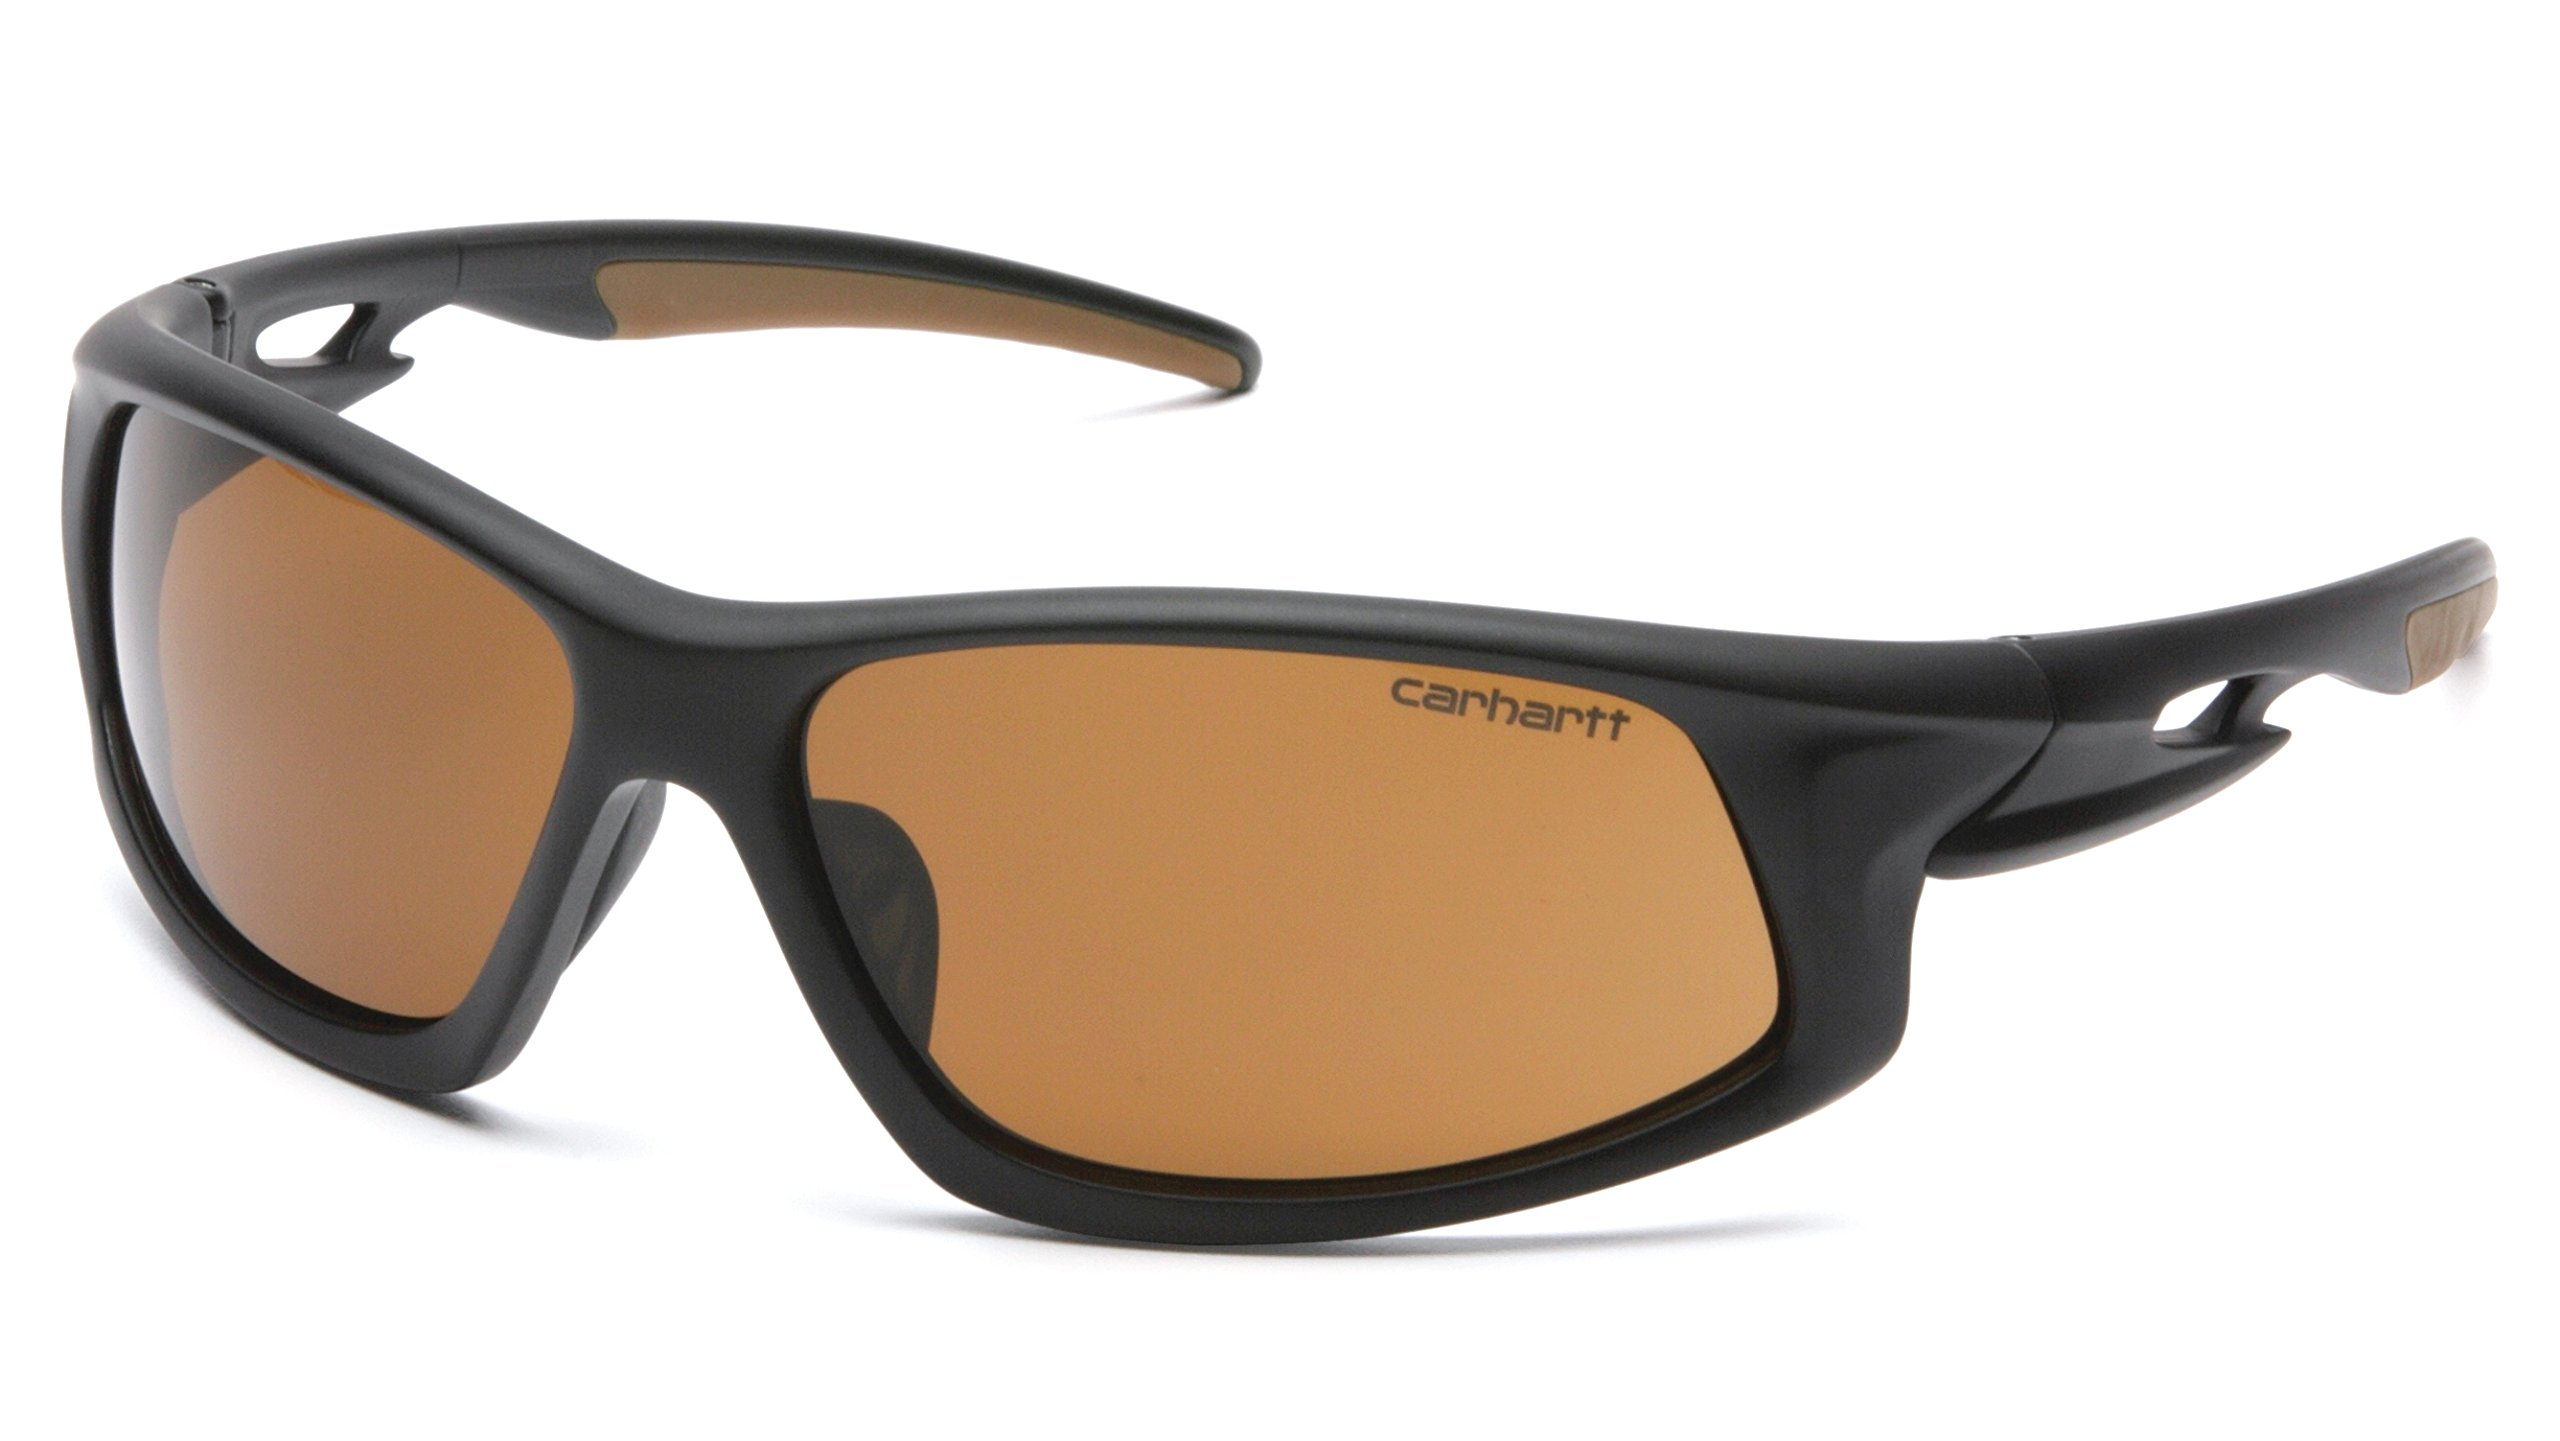 Carhartt Ironside Eye Protection with Sandstone Bronze Anti-fog Lens